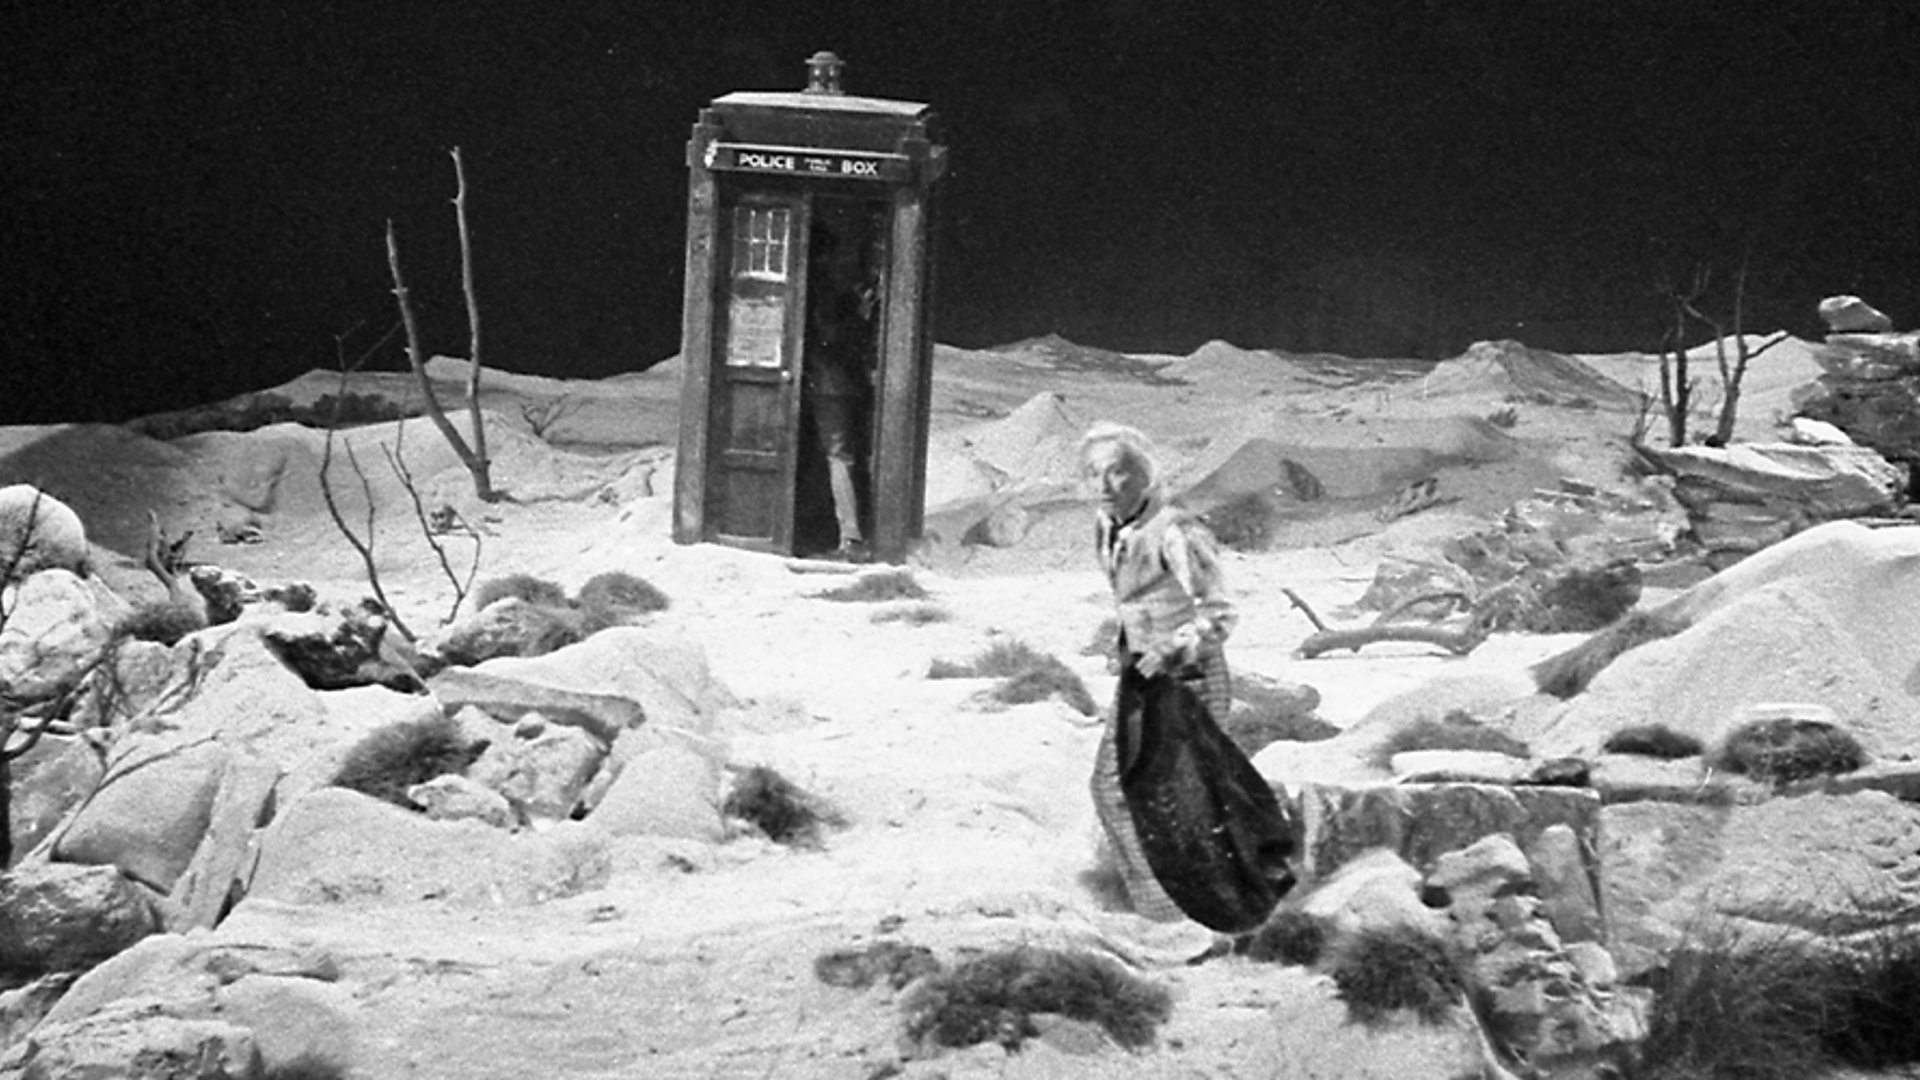 Doctor Who (1963) - Seriale sci-fi